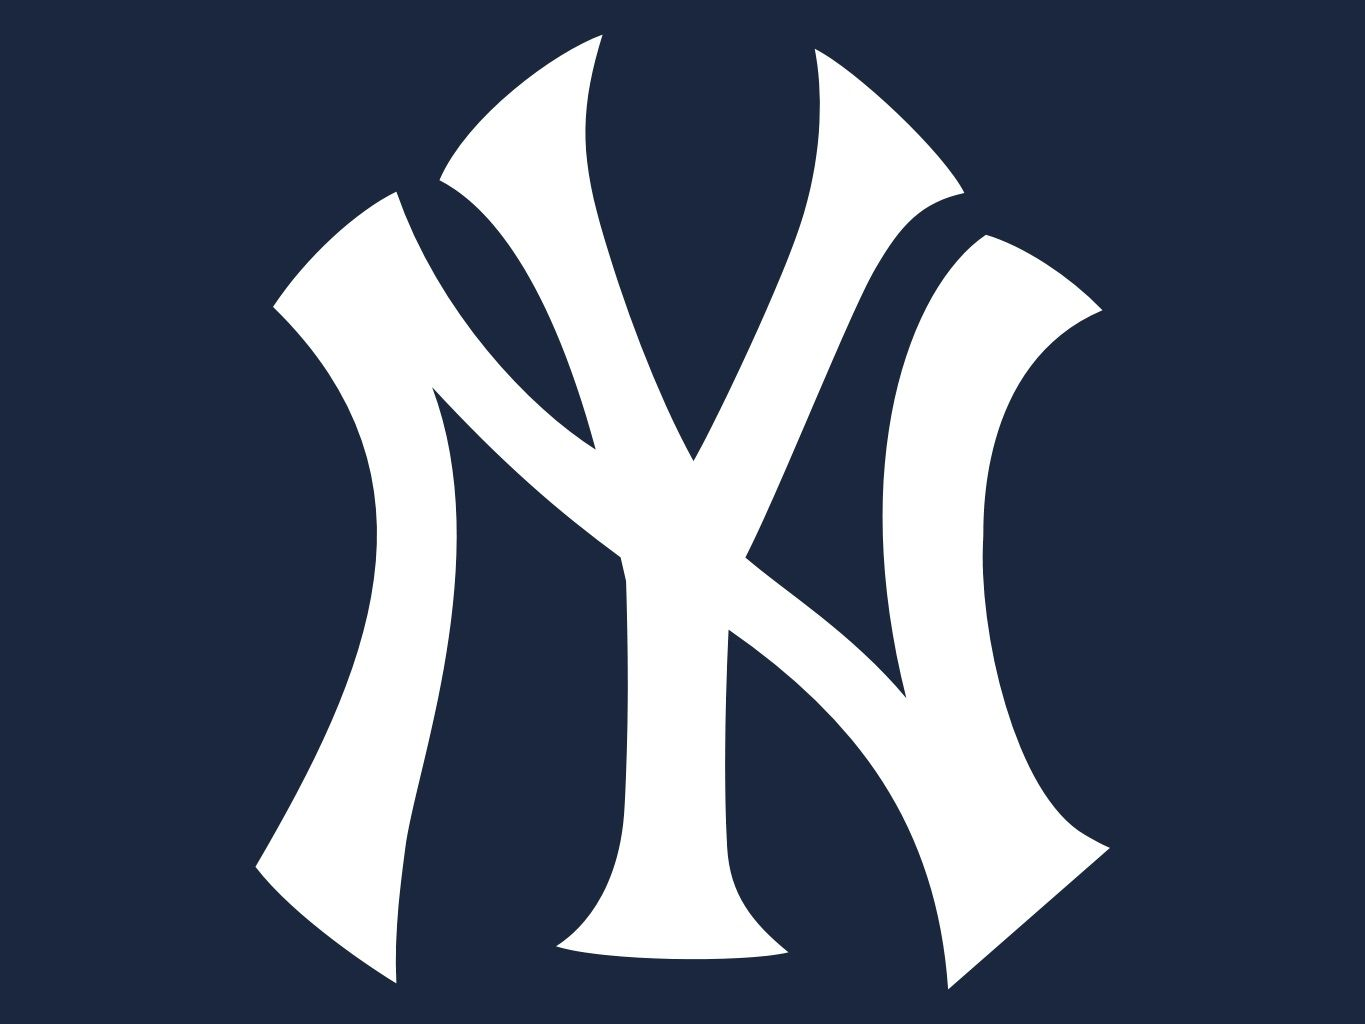 News Scores And Statistics About The New York Yankees Of The American League East Division Of Major League New York Yankees Logo Yankees Logo New York Yankees